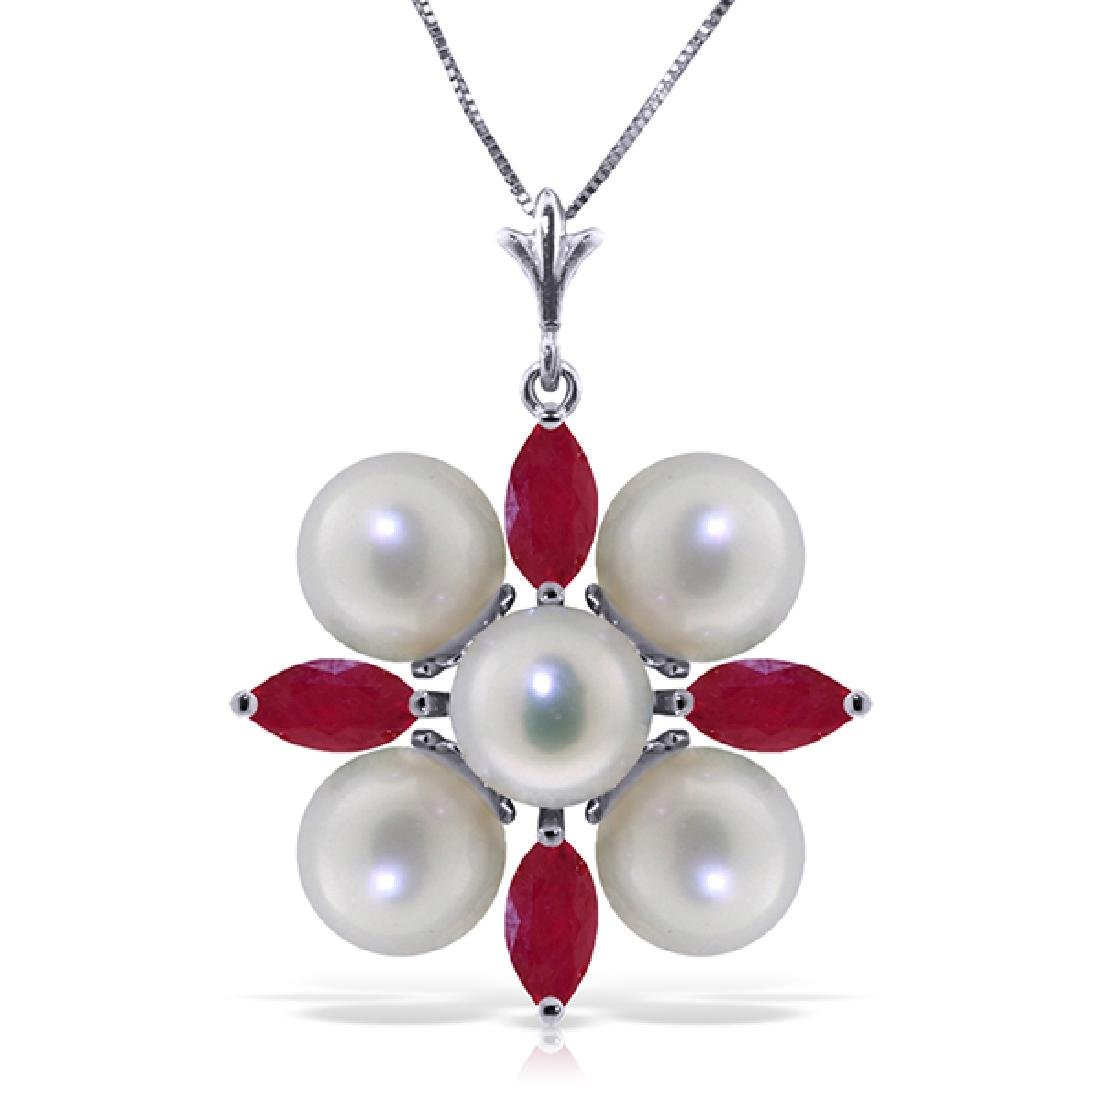 Genuine 6.3 ctw Ruby & Pearl Necklace Jewelry 14KT